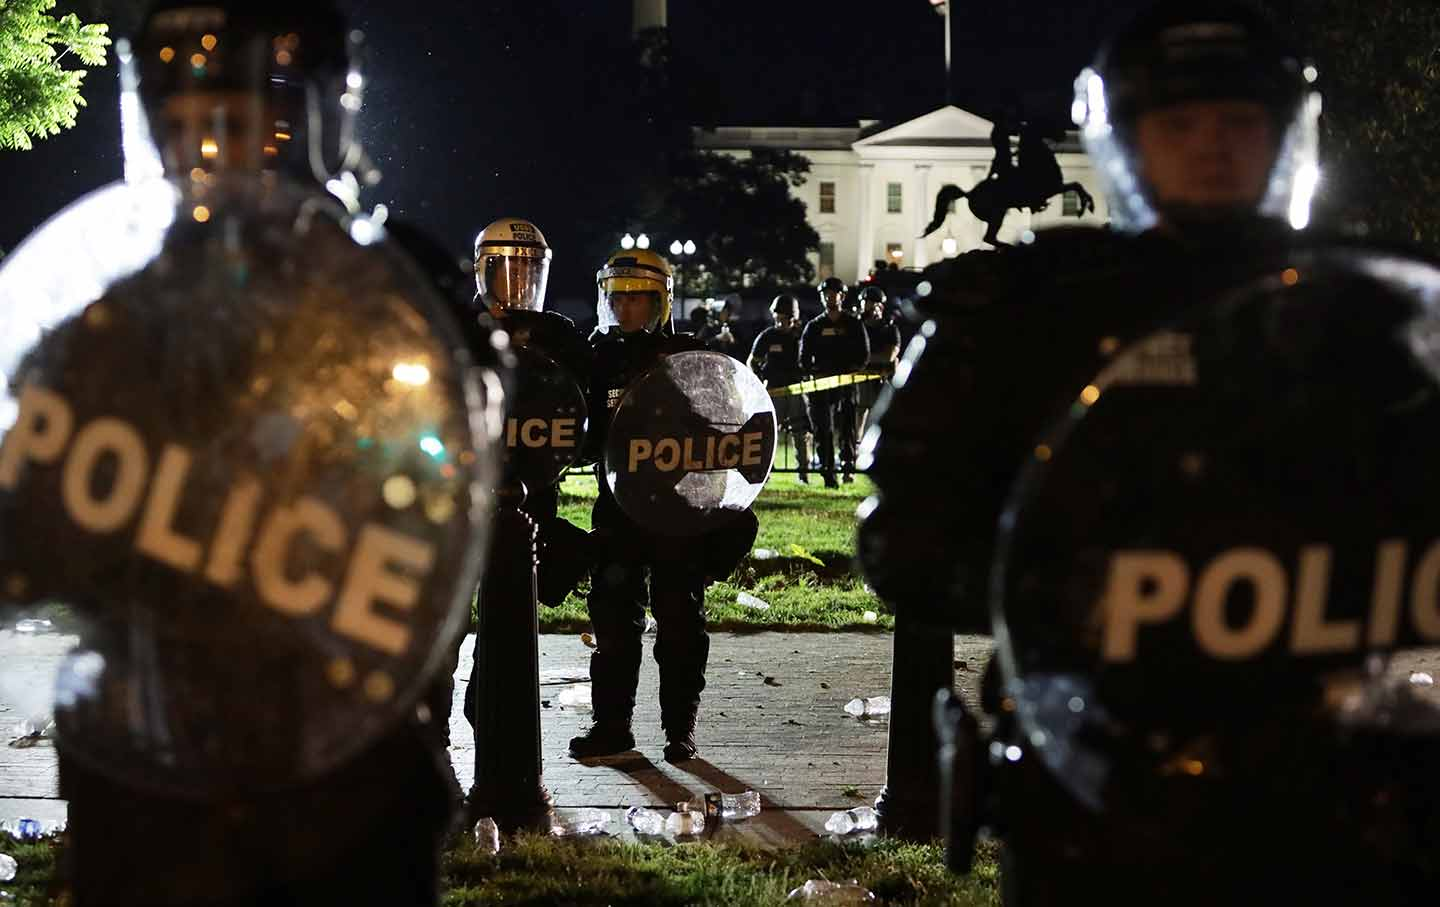 Police at a protest in Washington, DC